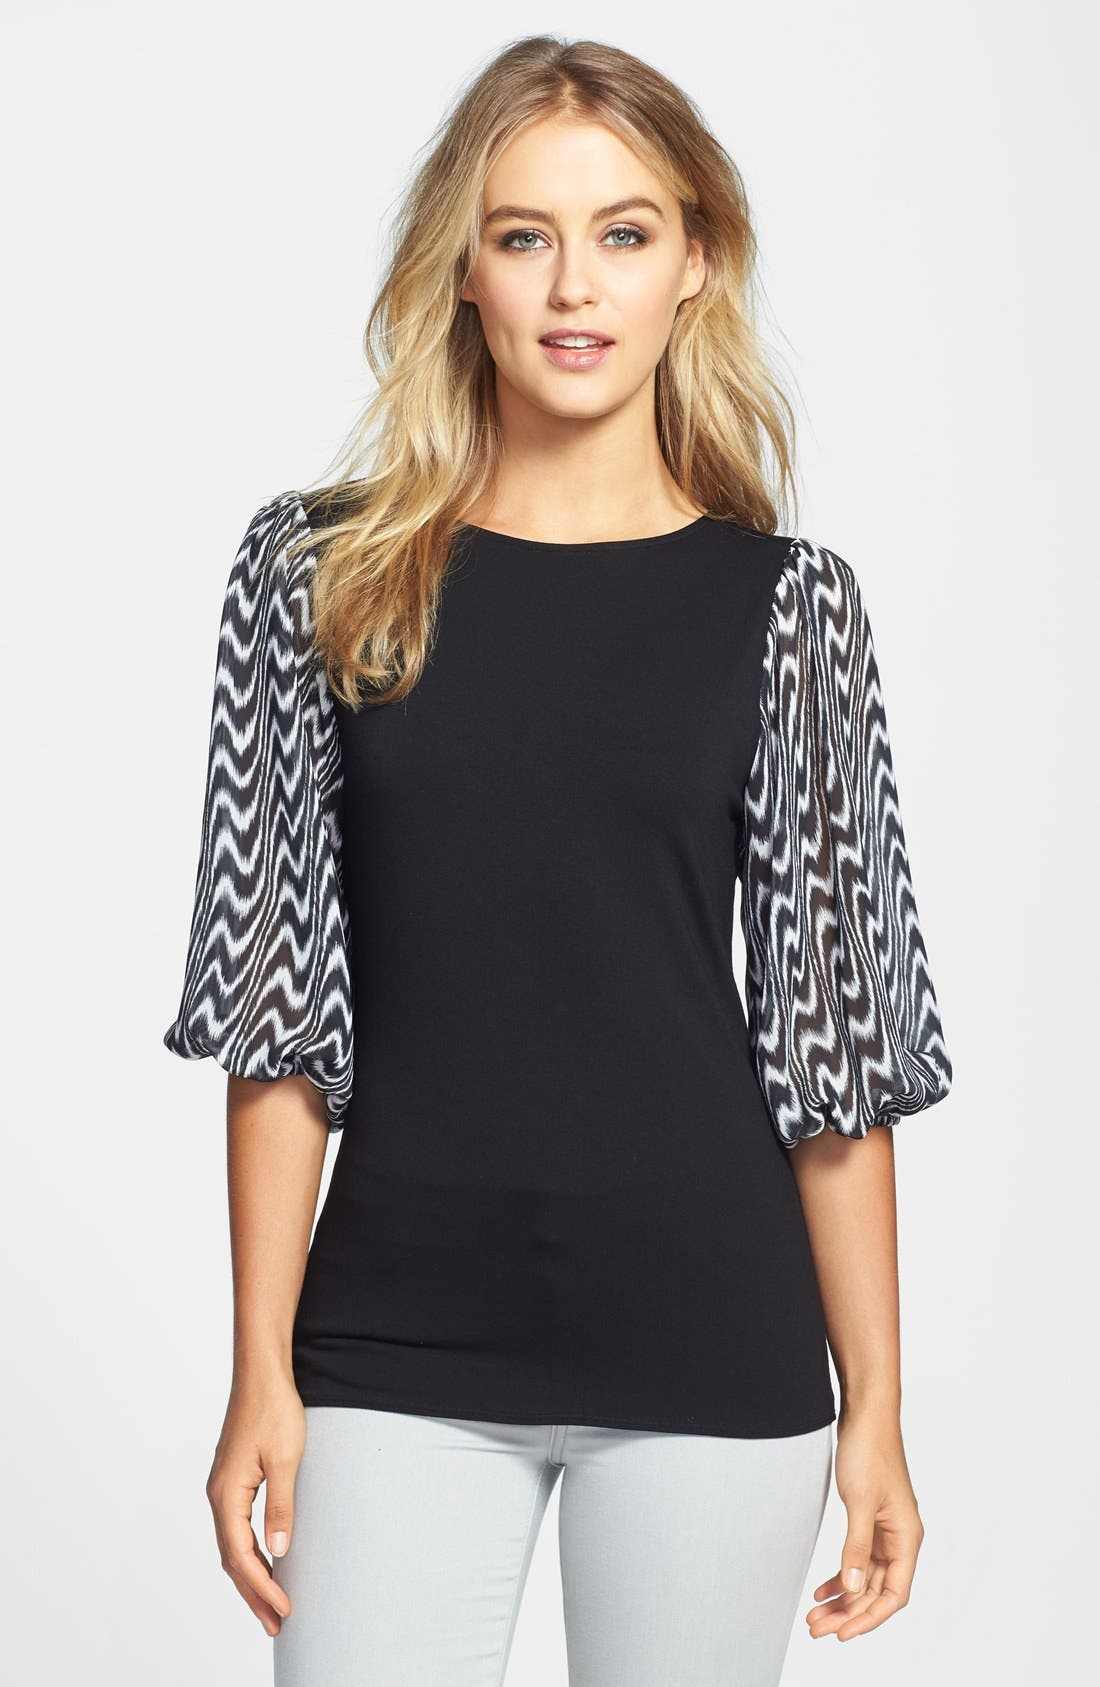 Alternate Image 1 Selected - Vince Camuto Print Chiffon Sleeve Stretch Knit Top